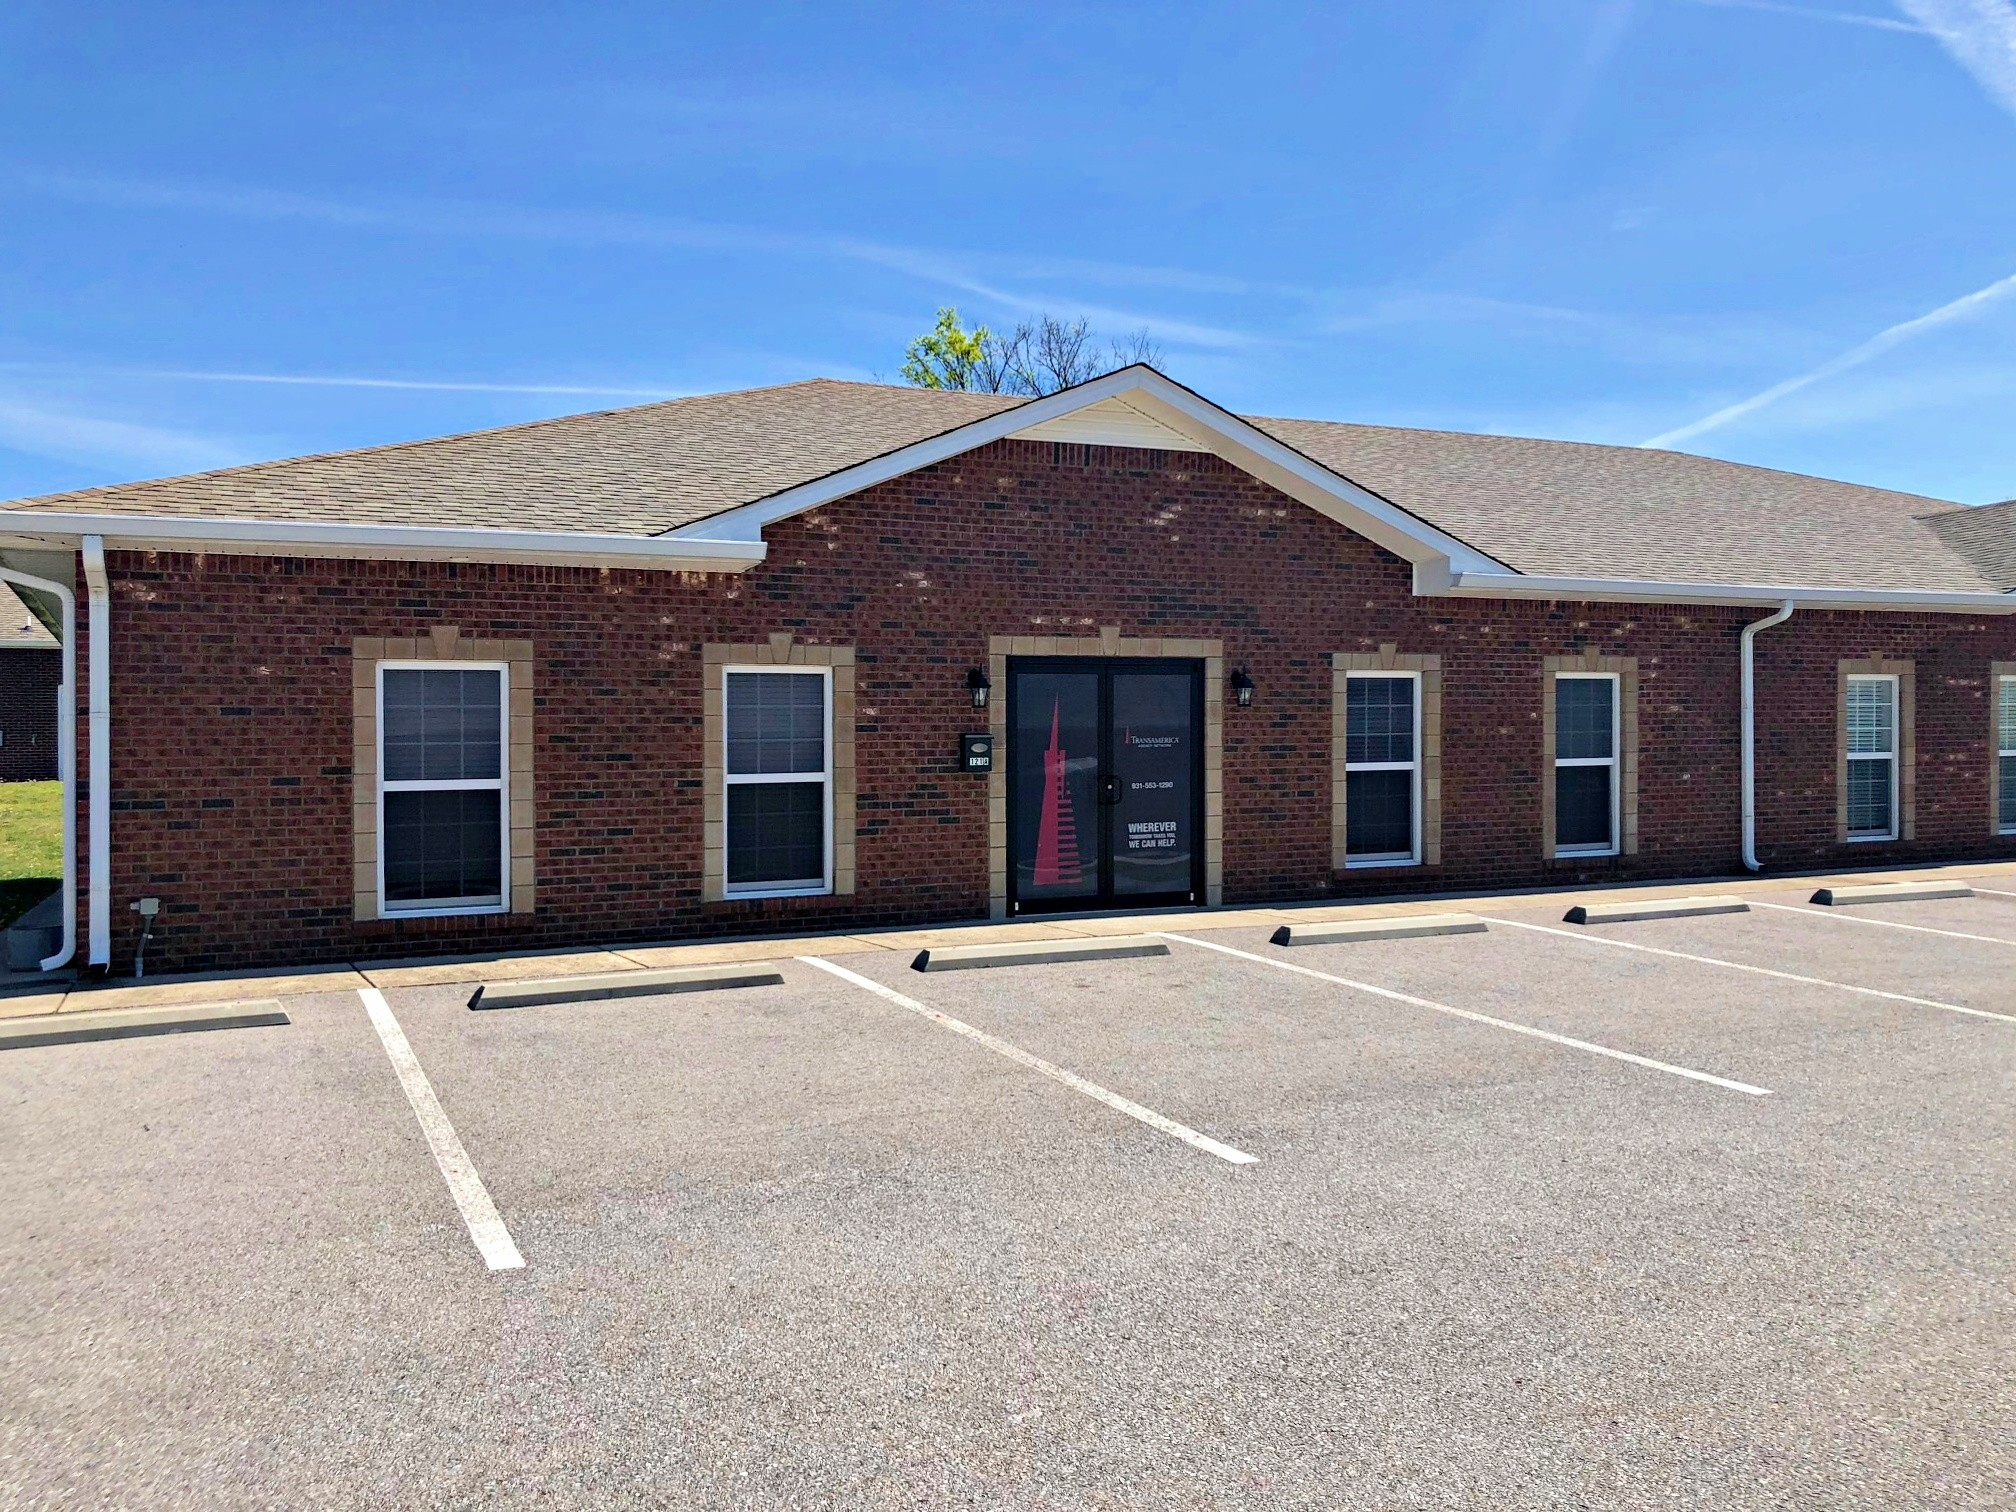 Office building for sale located in well established Eagle's Point office park in Clarksville's premier commercial submarket of St. Bethlehem. 4900 sf building consists of 3 separate suites: Ste A of 2,500 RSF and Stes B and C of 1,225 RSF each. Suites are built out as offices and are vacant and ready for a new buyer to occupy or rent out as they see fit. Good parking, easy accessibility, prime location and an attractive building round out this great opportunity for an owner user or investor.